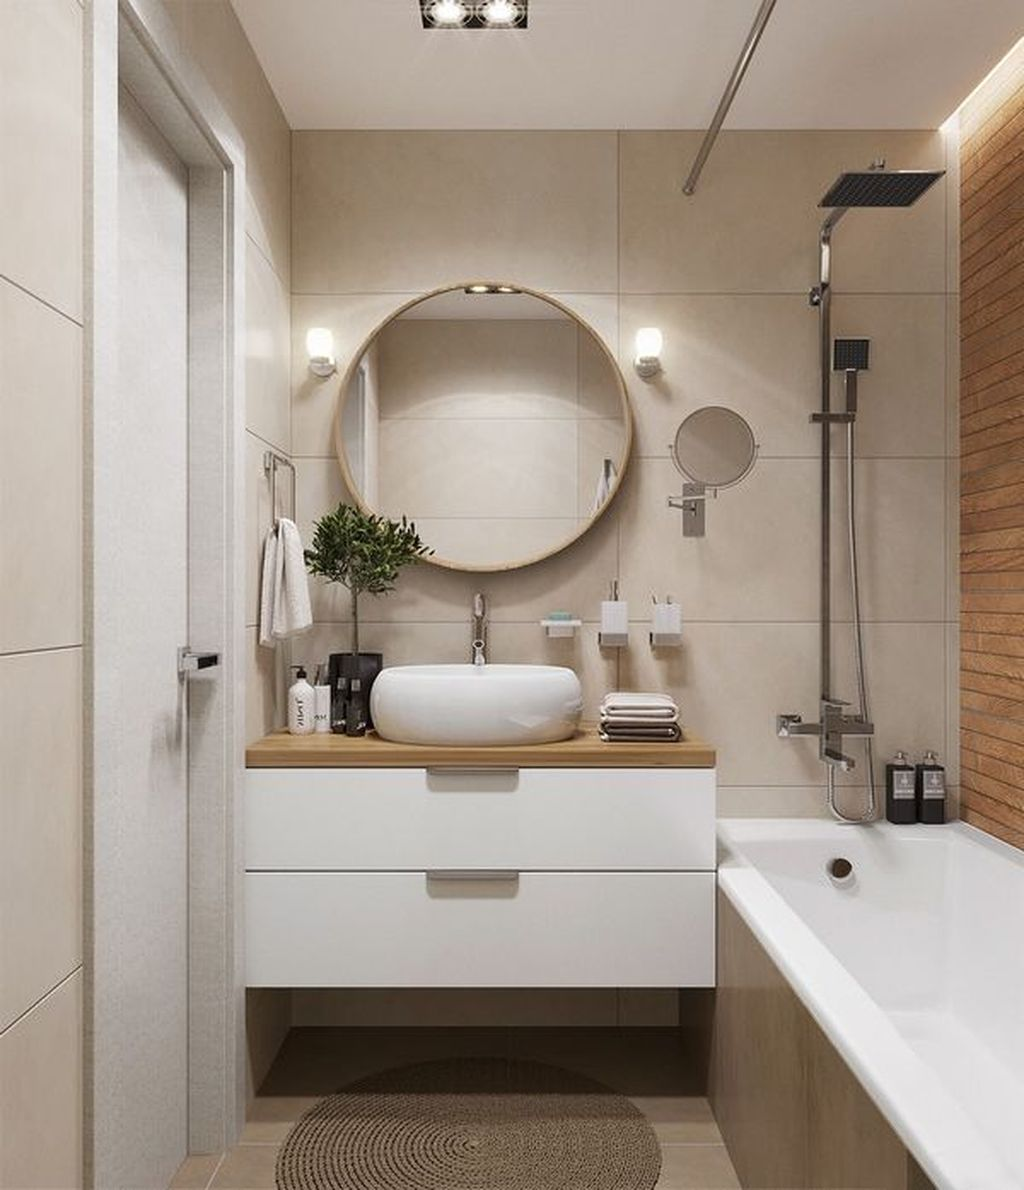 Inspiring Bathroom Interior Design Ideas 04